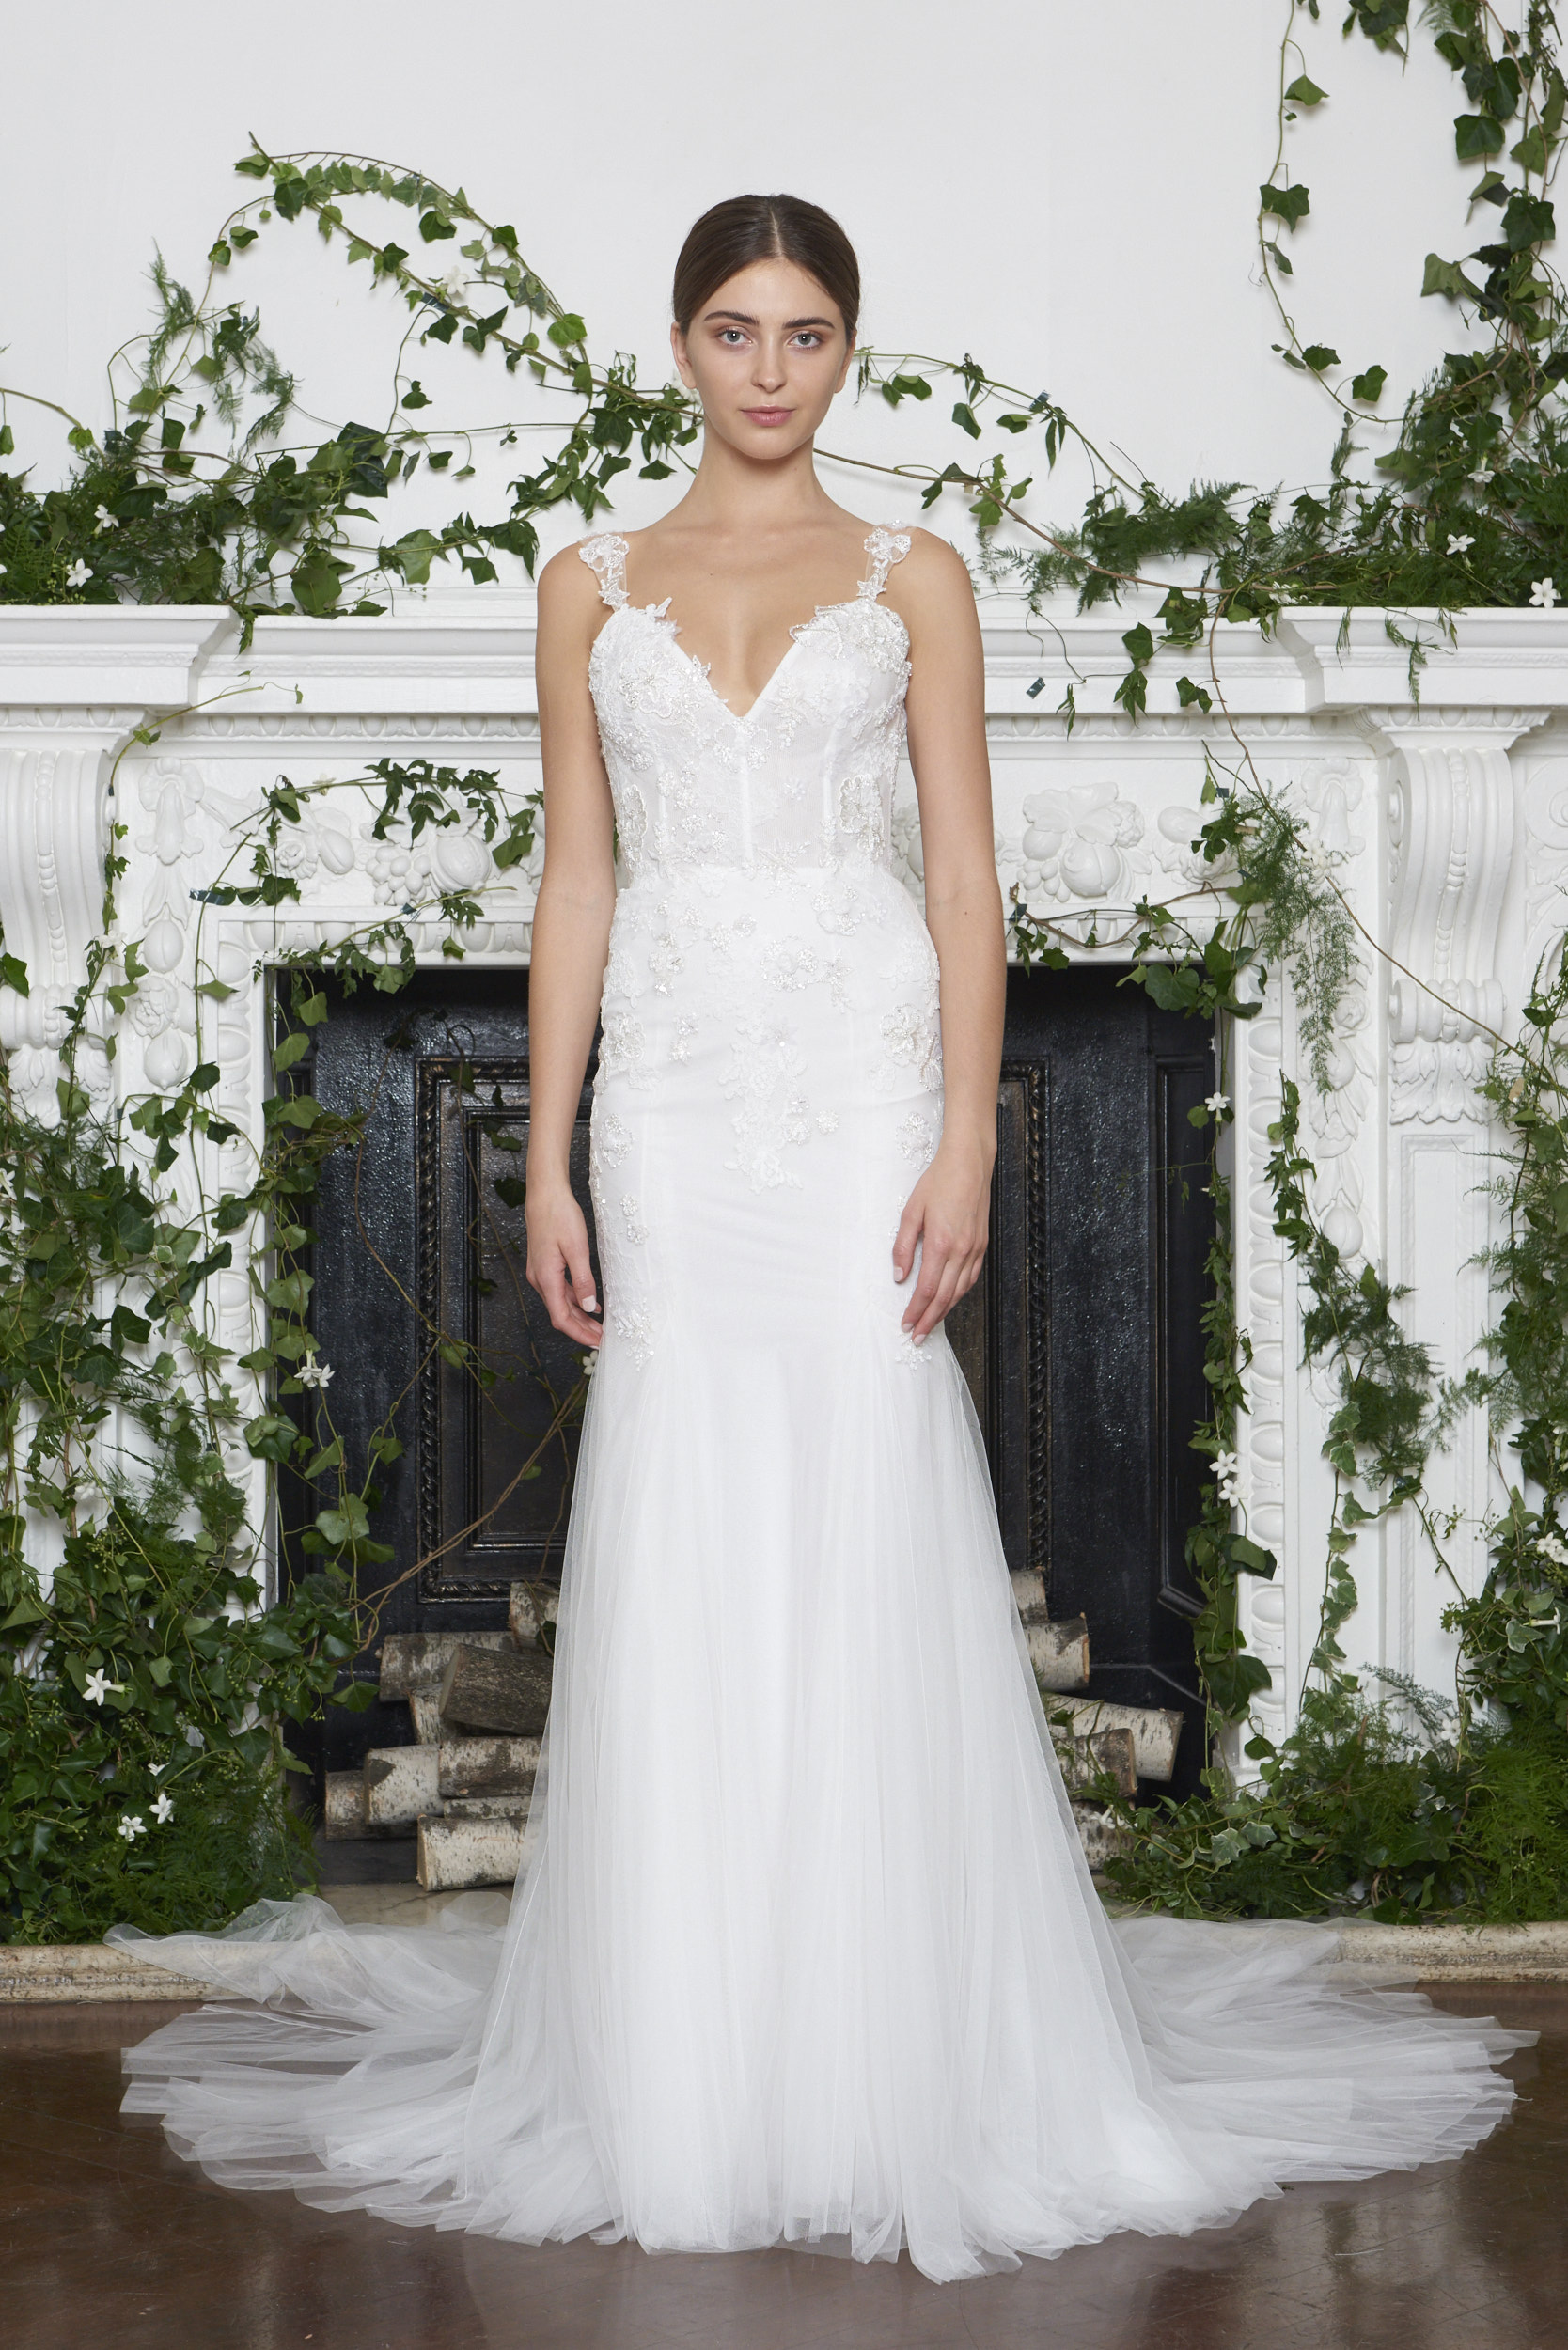 Monique Lhuillier Fall 2018 Slim Mermaid Wedding Dress with Embroidery